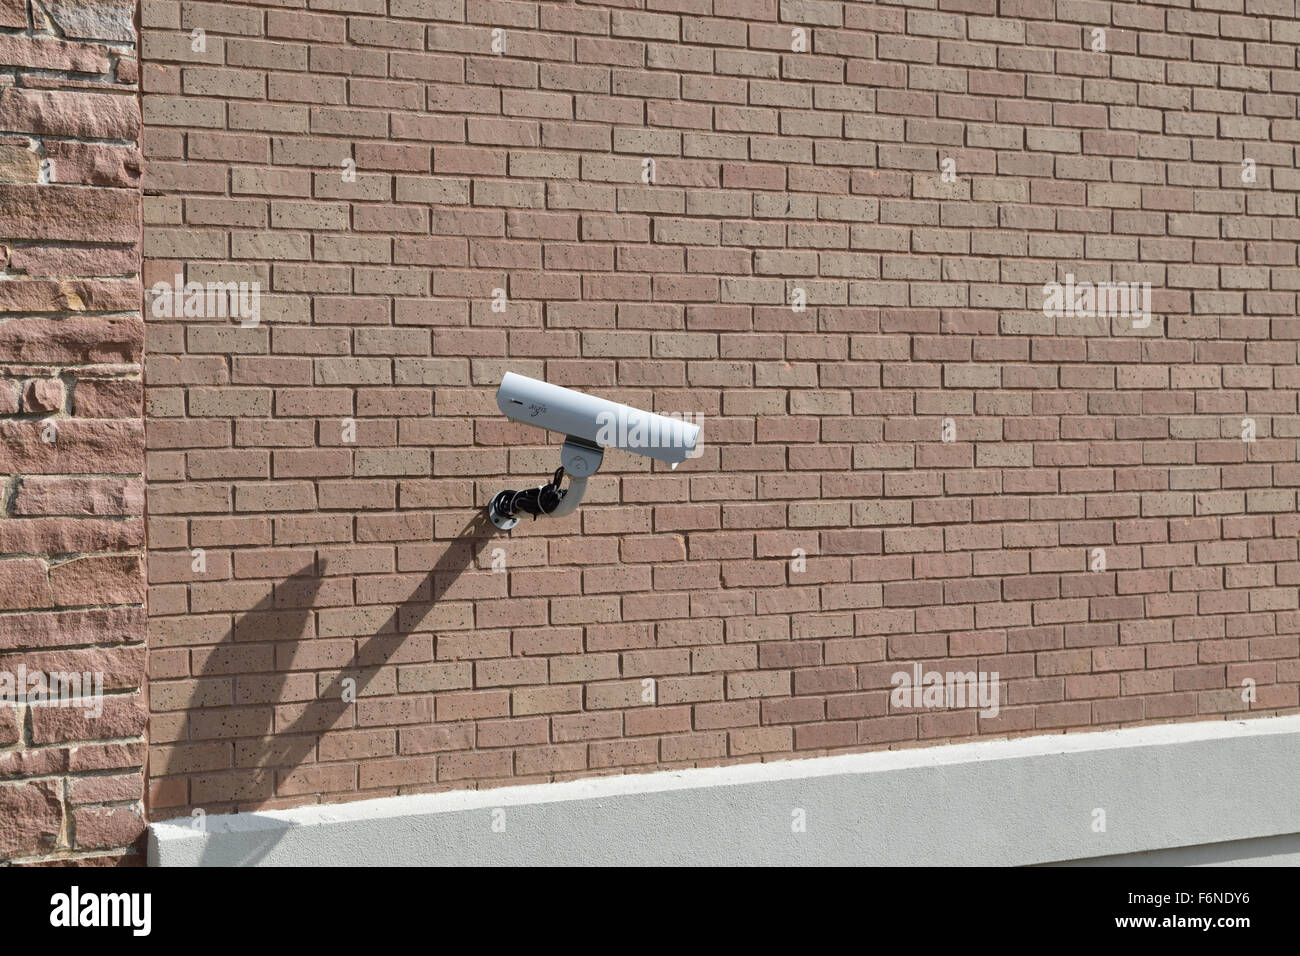 Security camera on the side of a brick building - Stock Image